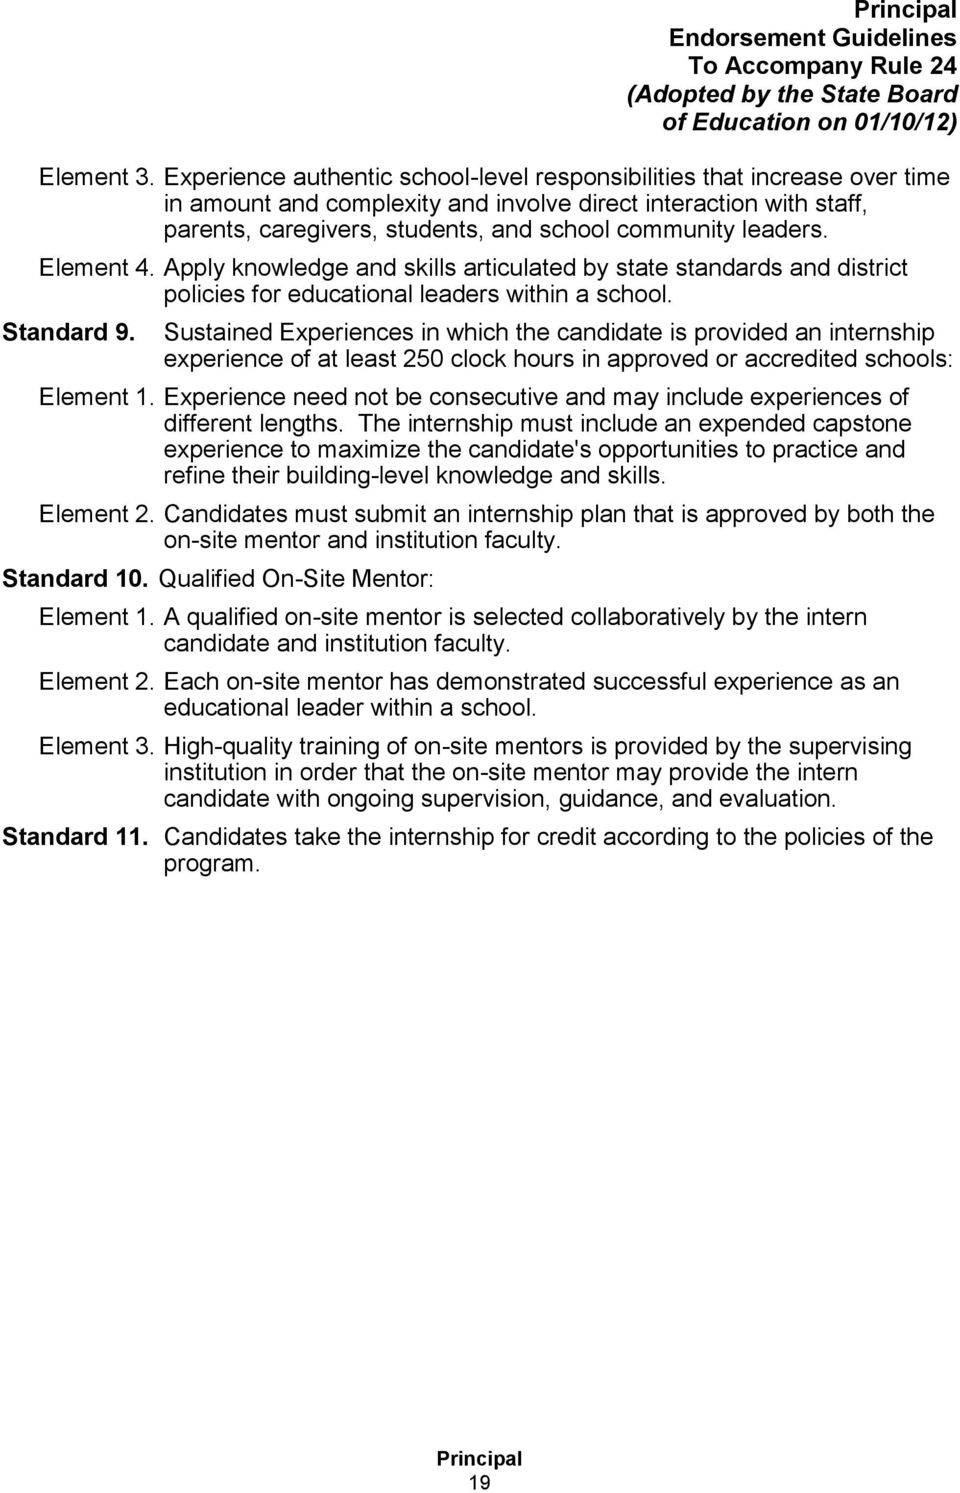 leaders. Element 4. Apply knowledge and skills articulated by state standards and district policies for educational leaders within a school. Standard 9.